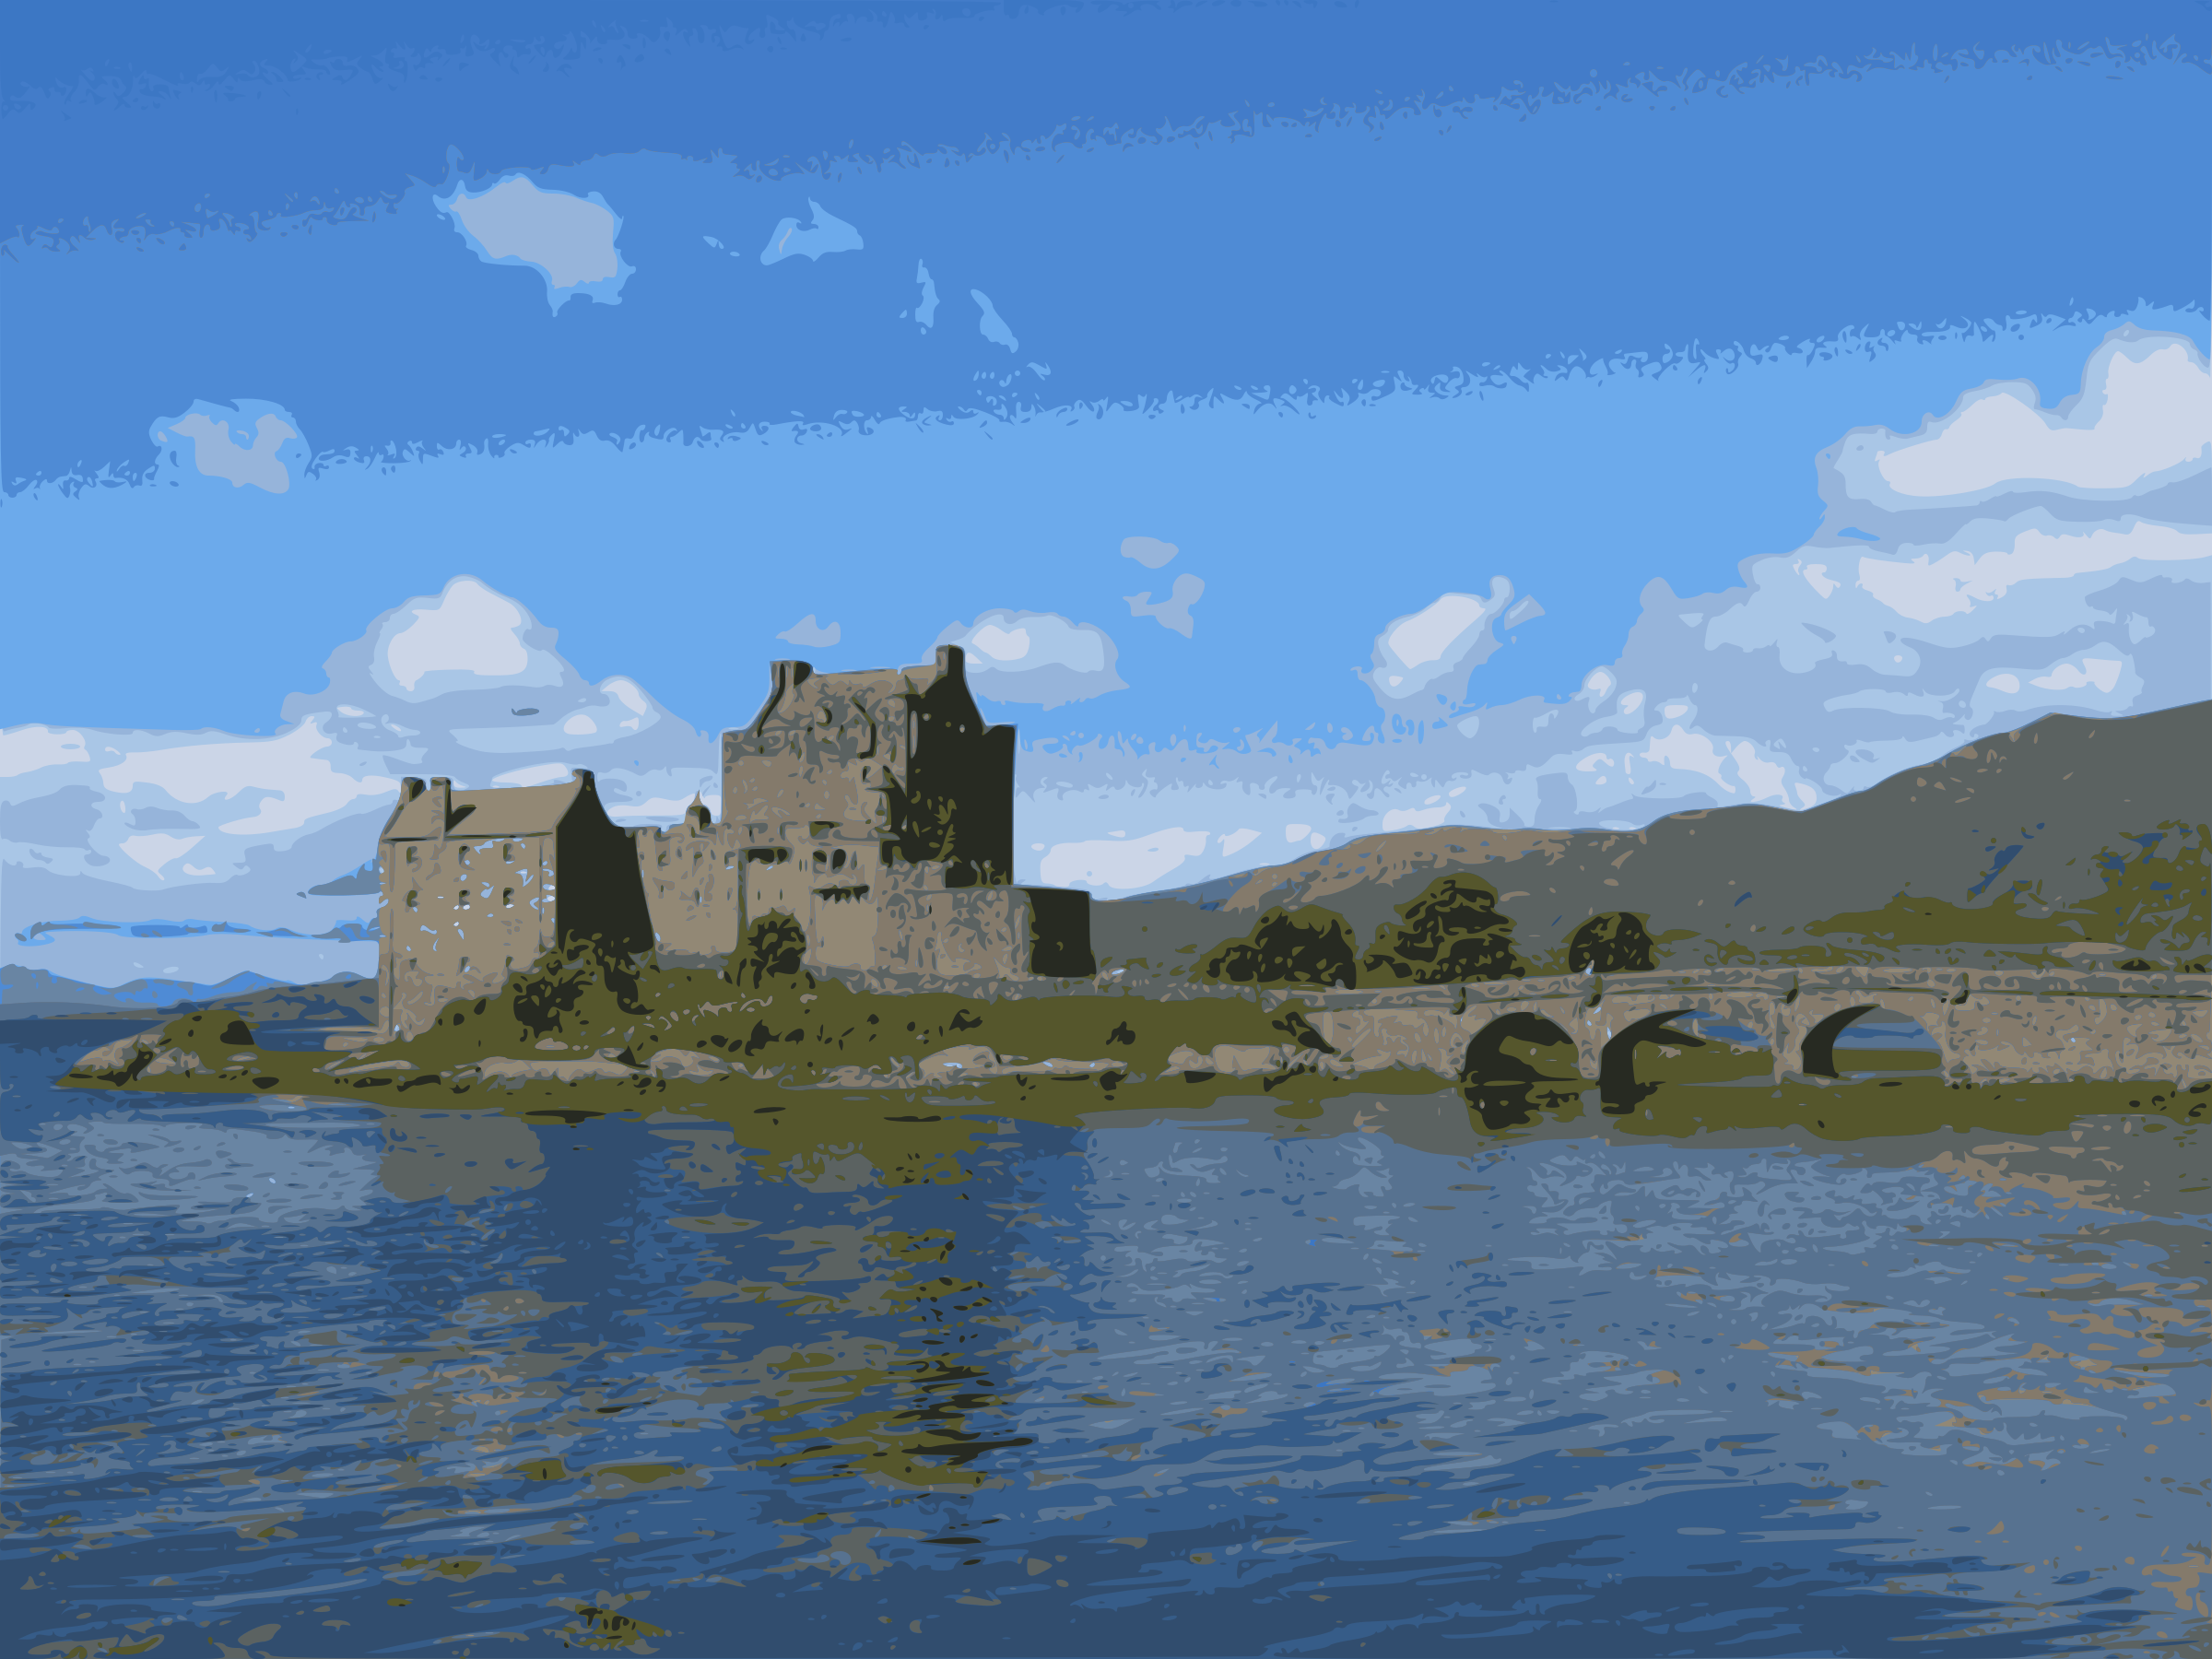 Eilean Donan Castle, Scotland, UK by Sonshine_Penguin